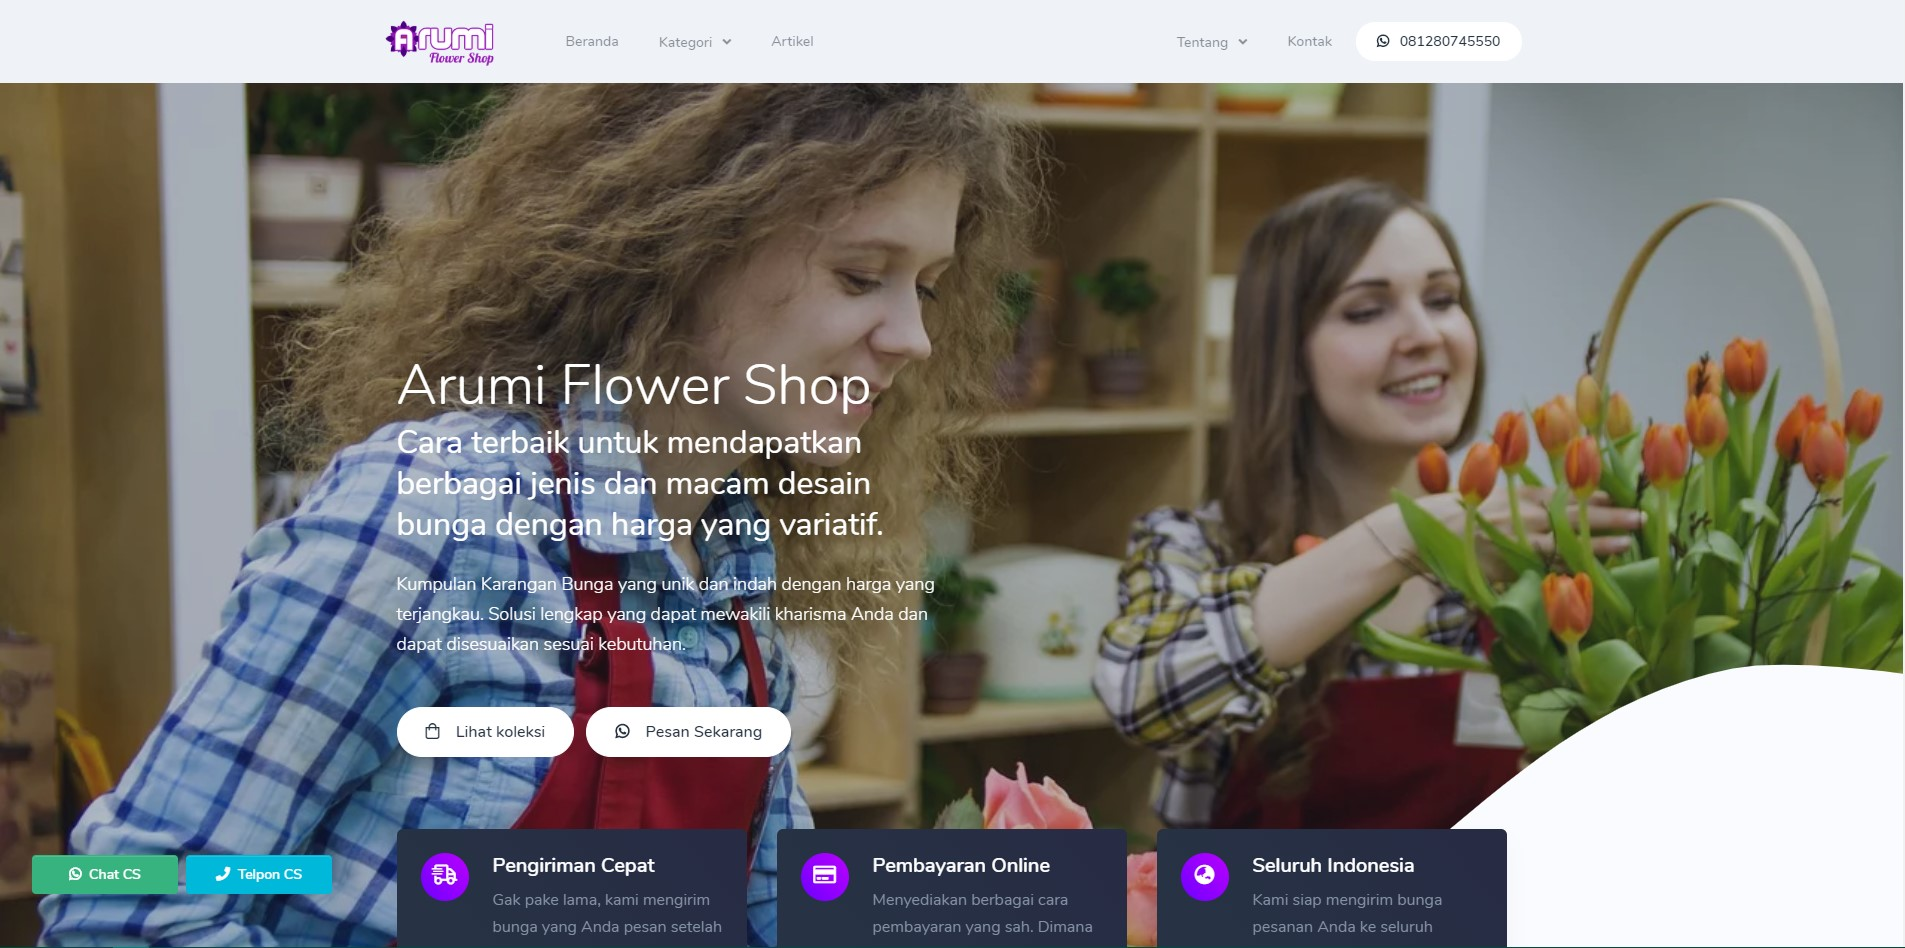 Arumi Flower Shop